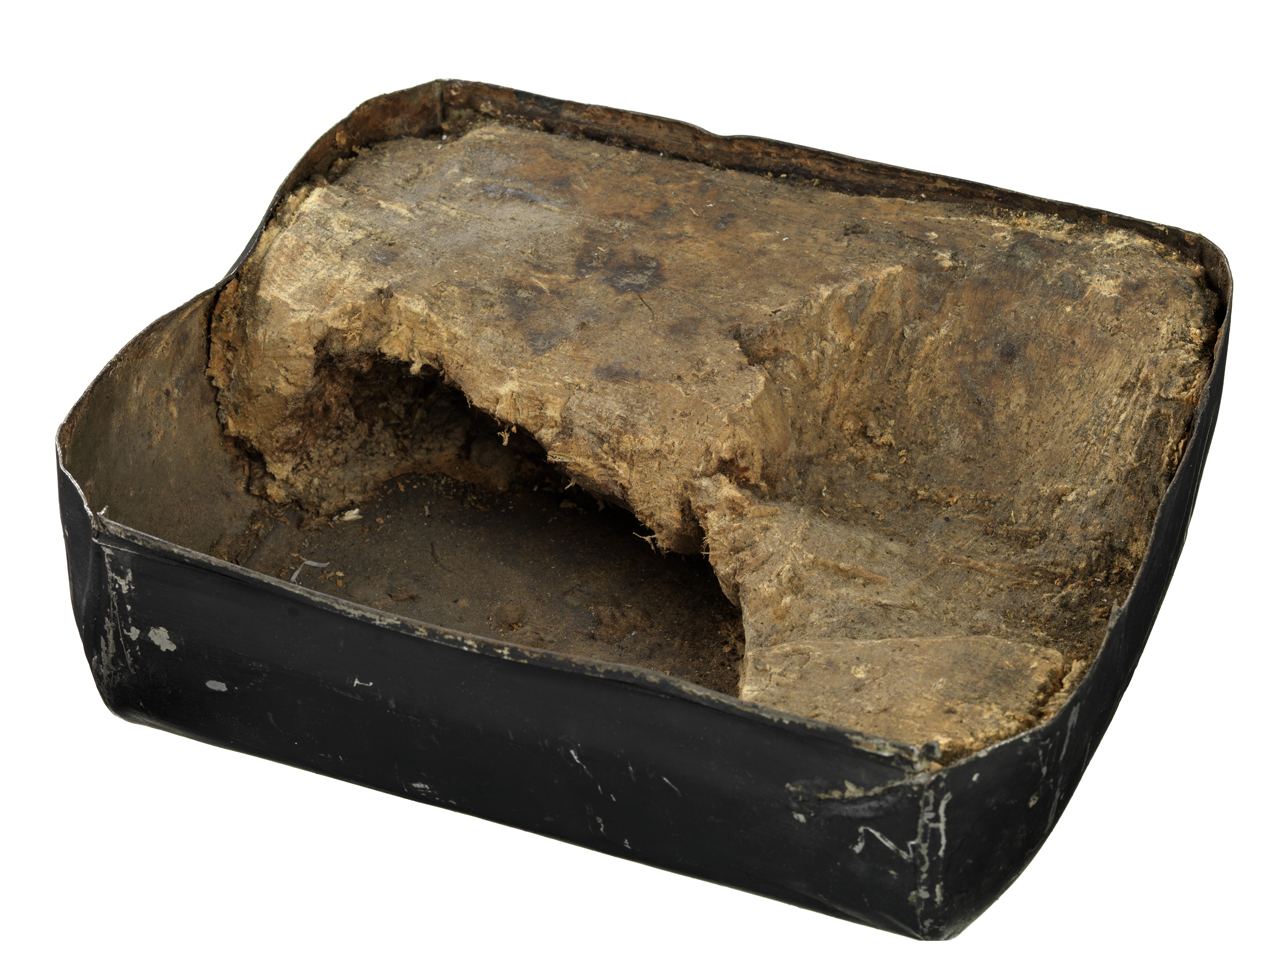 An image showing 'Tinned pemmican'